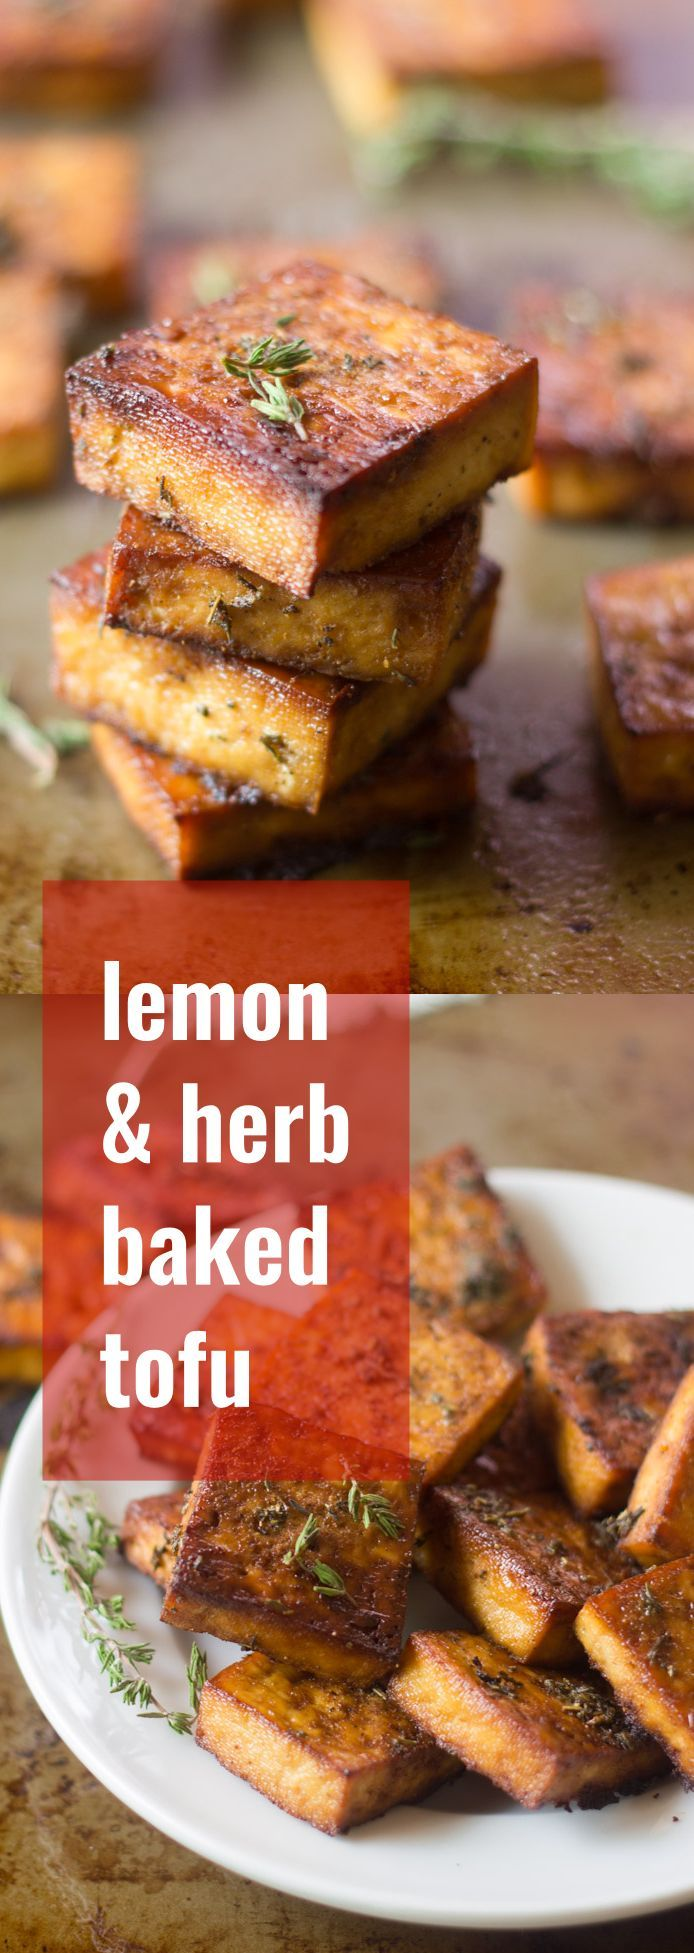 This flavor-packed baked tofu is soaked in a marinade of zesty lemon juice, zippy garlic, and savory herbs, then baked to perfection. It's perfect stuffed in a sandwich or sprinkled on salad!